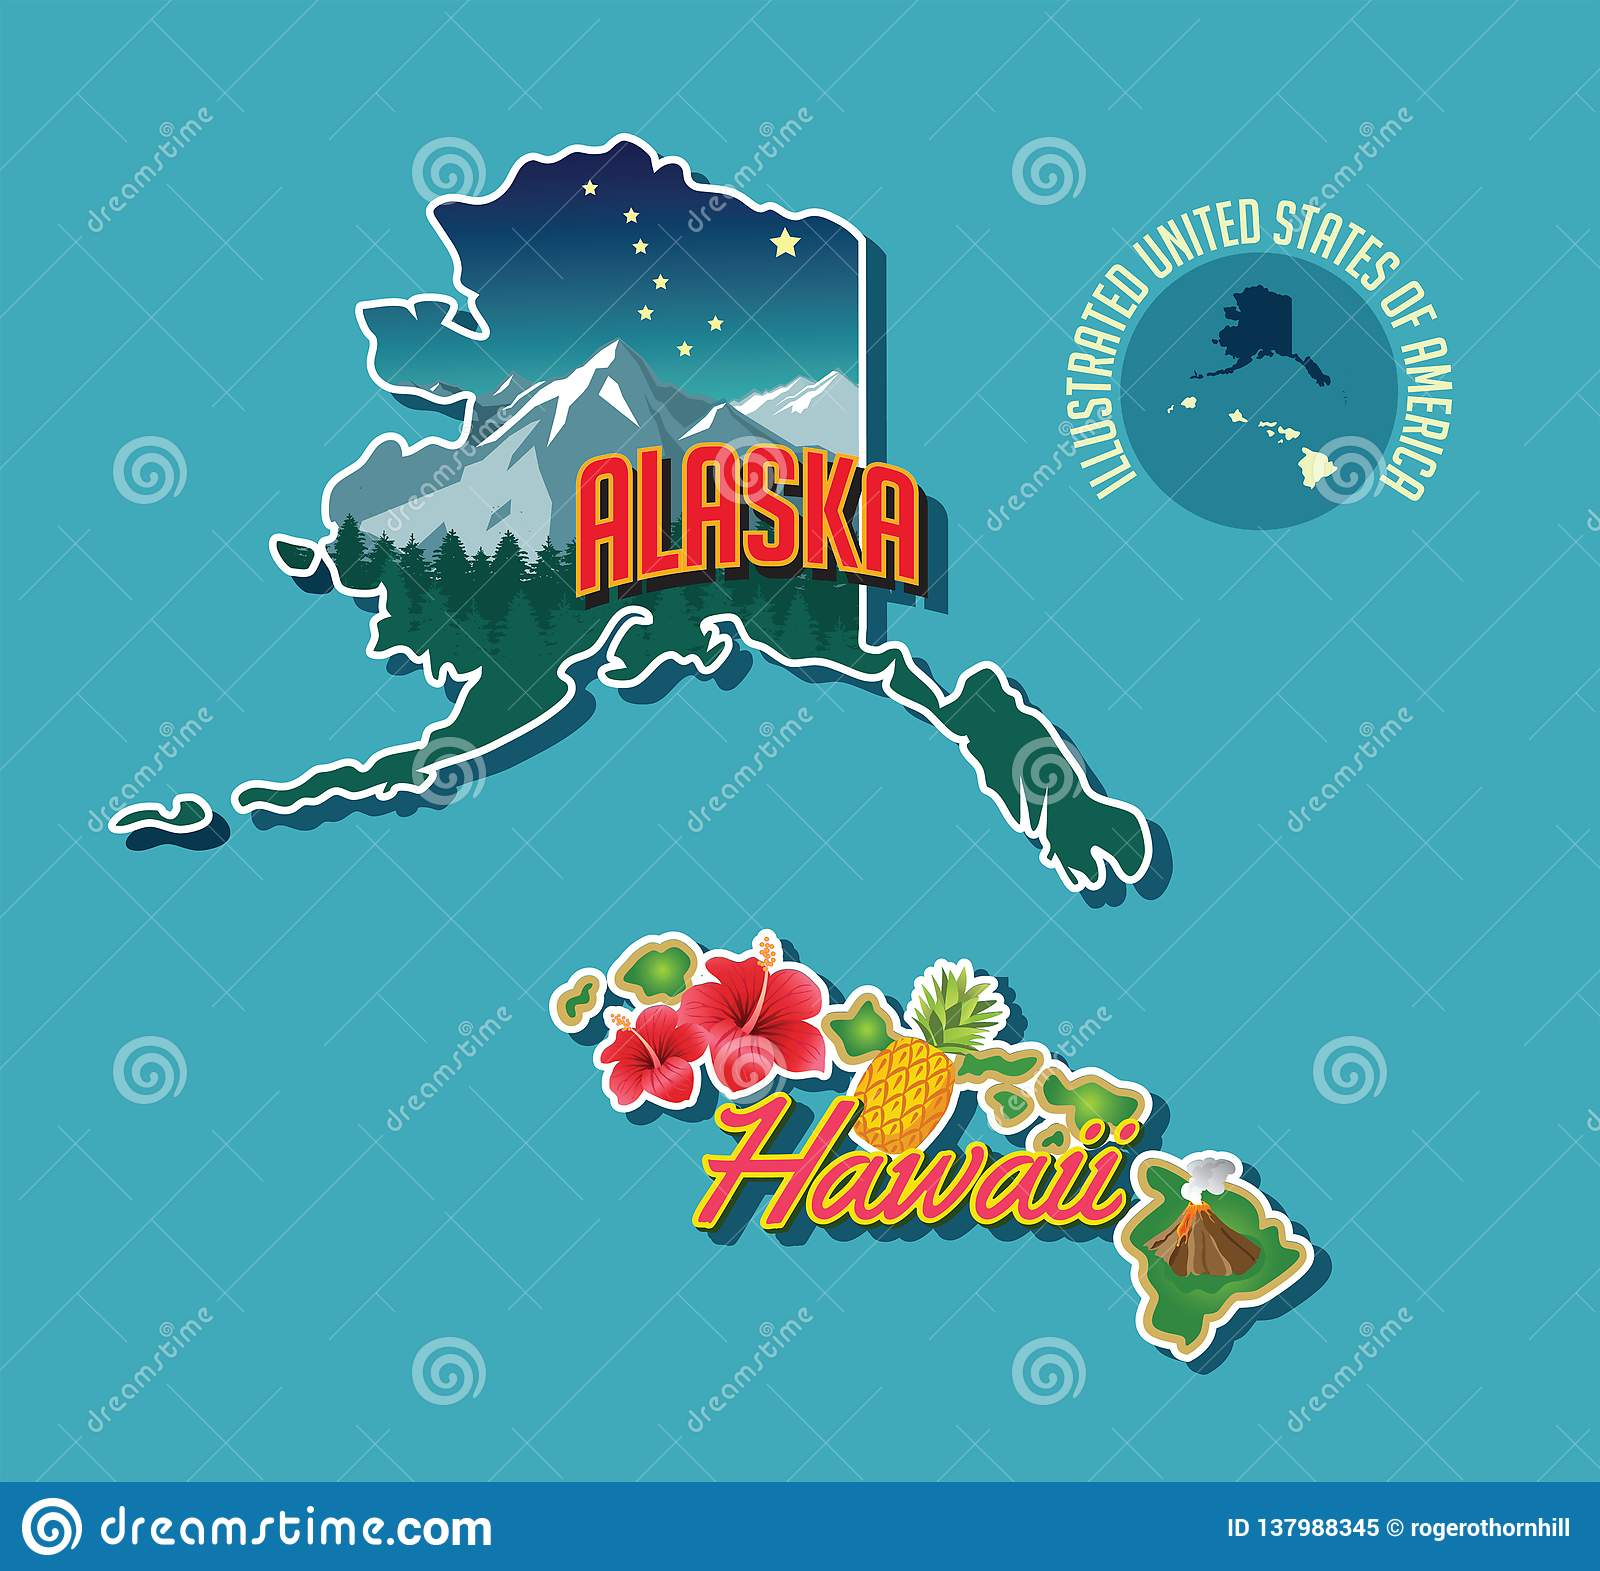 Illustrated Pictorial Map Of Alaska And Hawaii Stock Vector ...